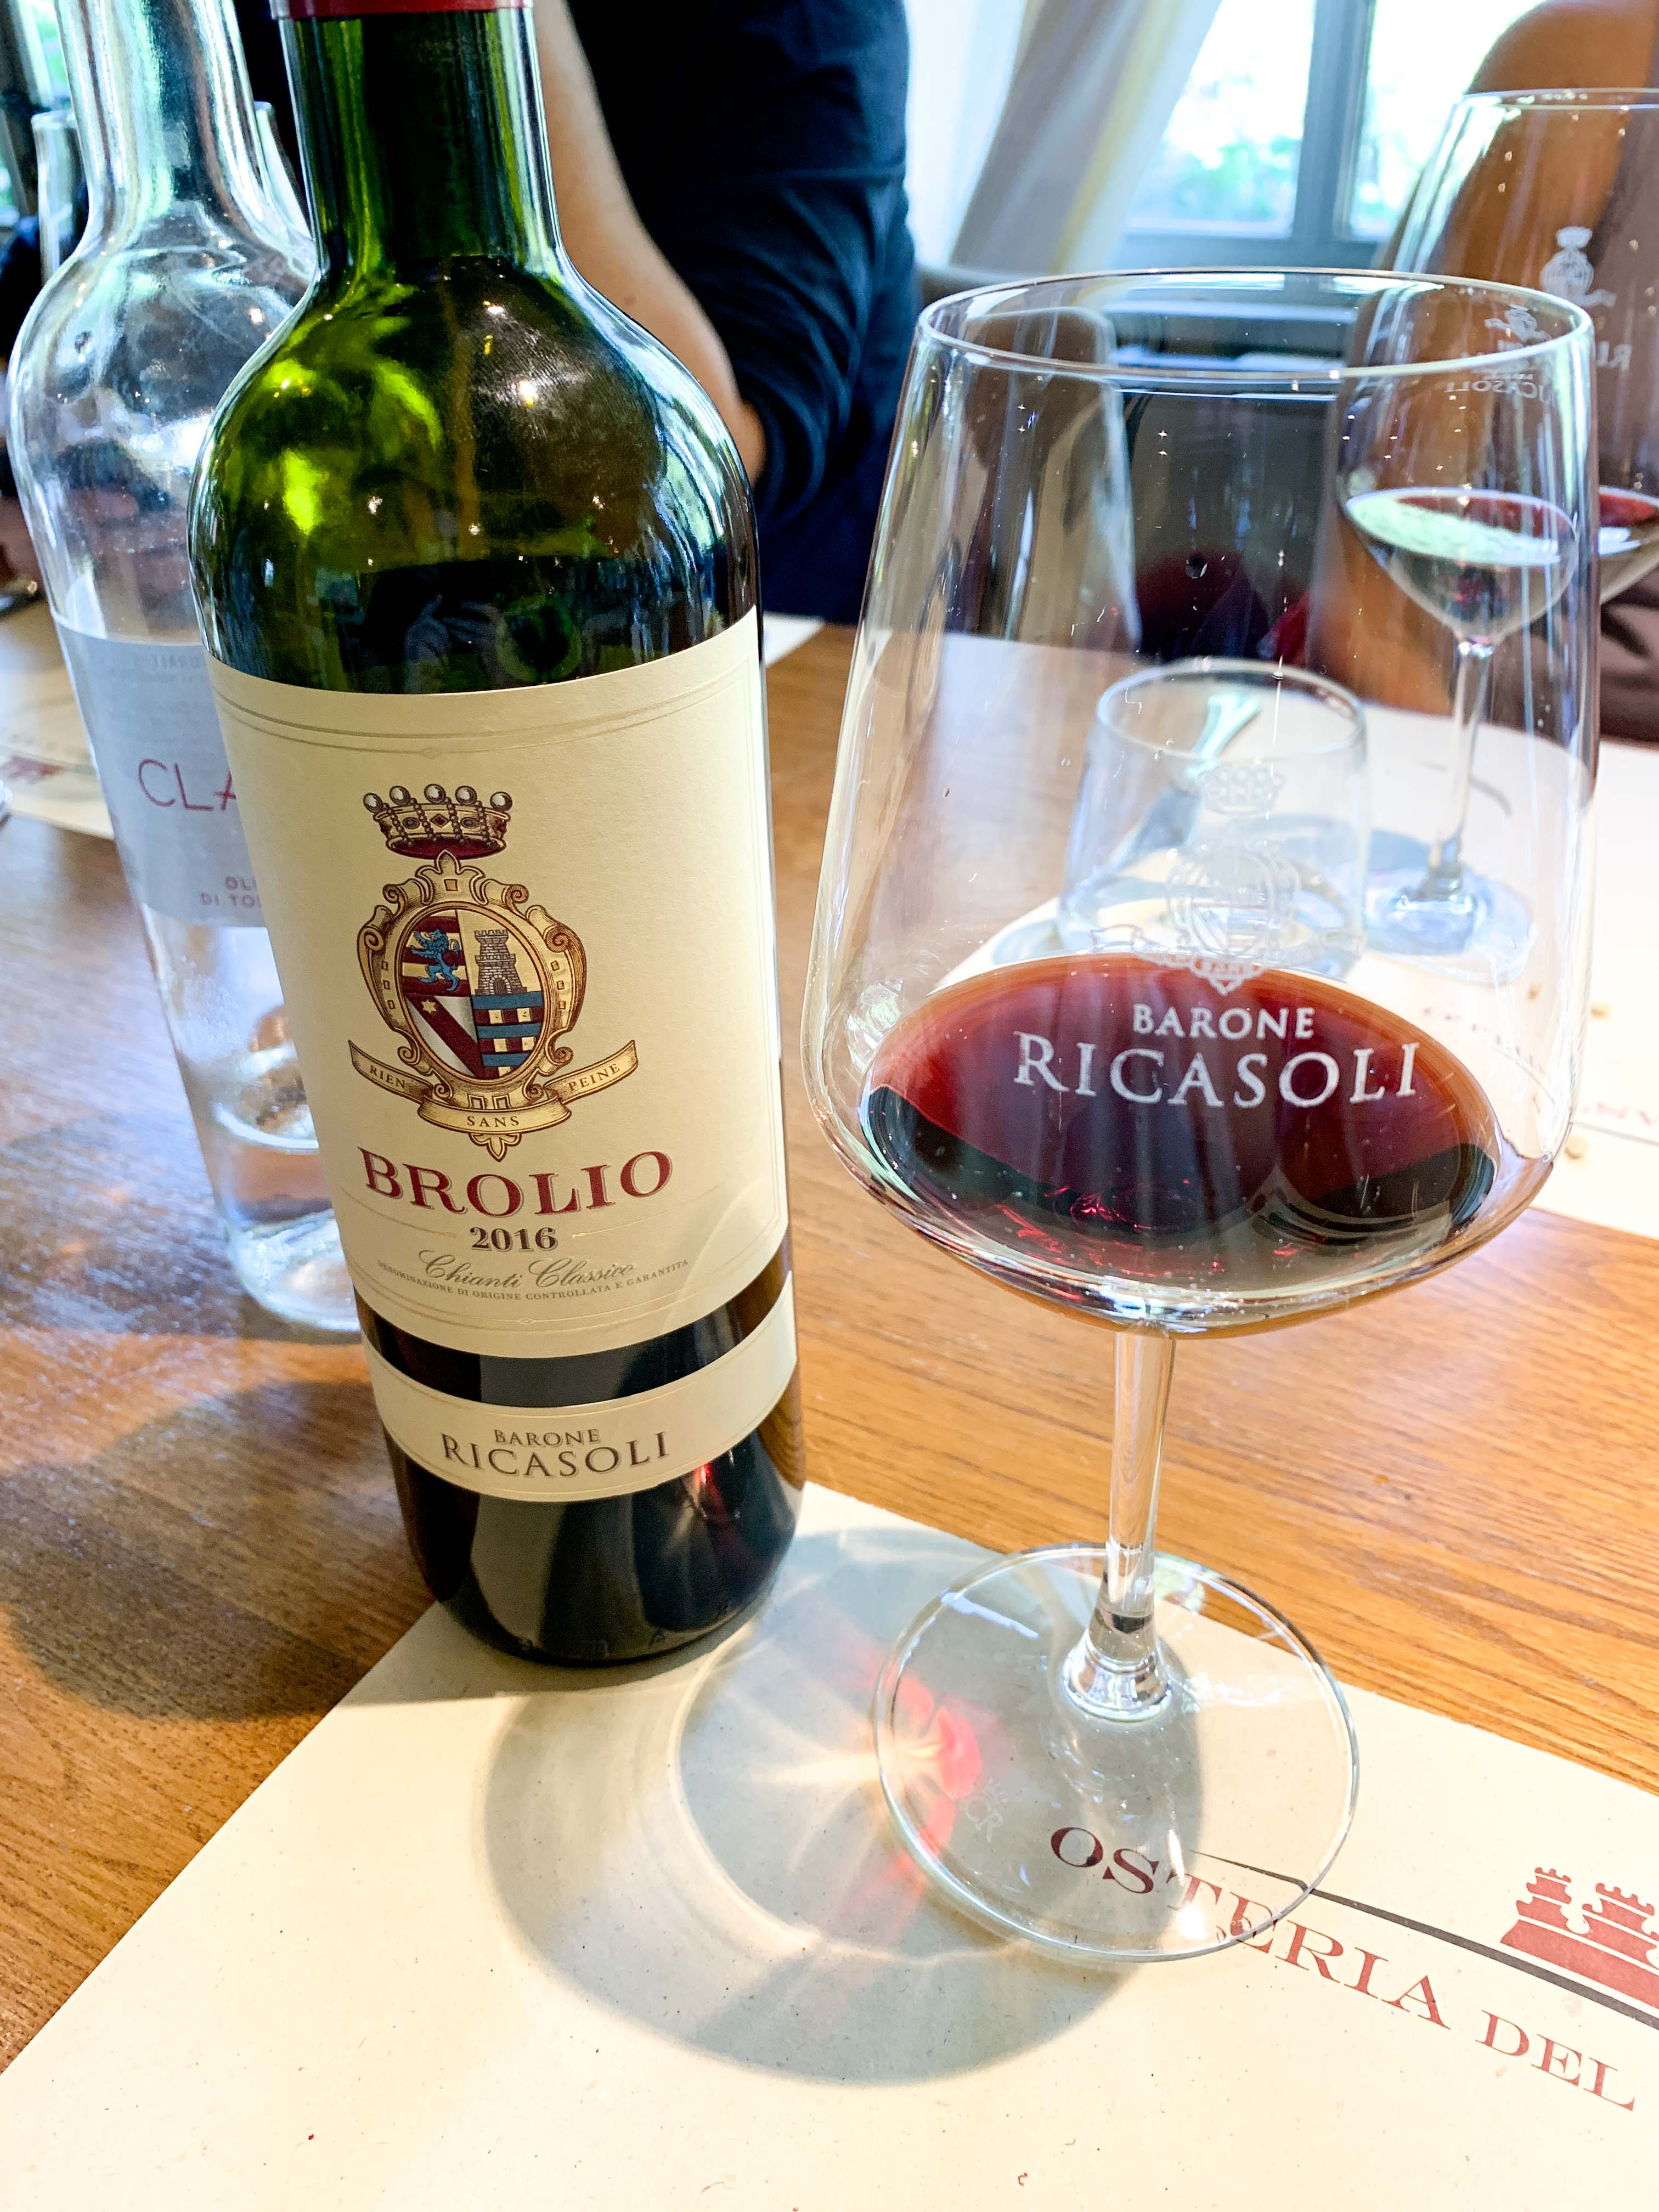 Drinking Chianti Classico with lunch